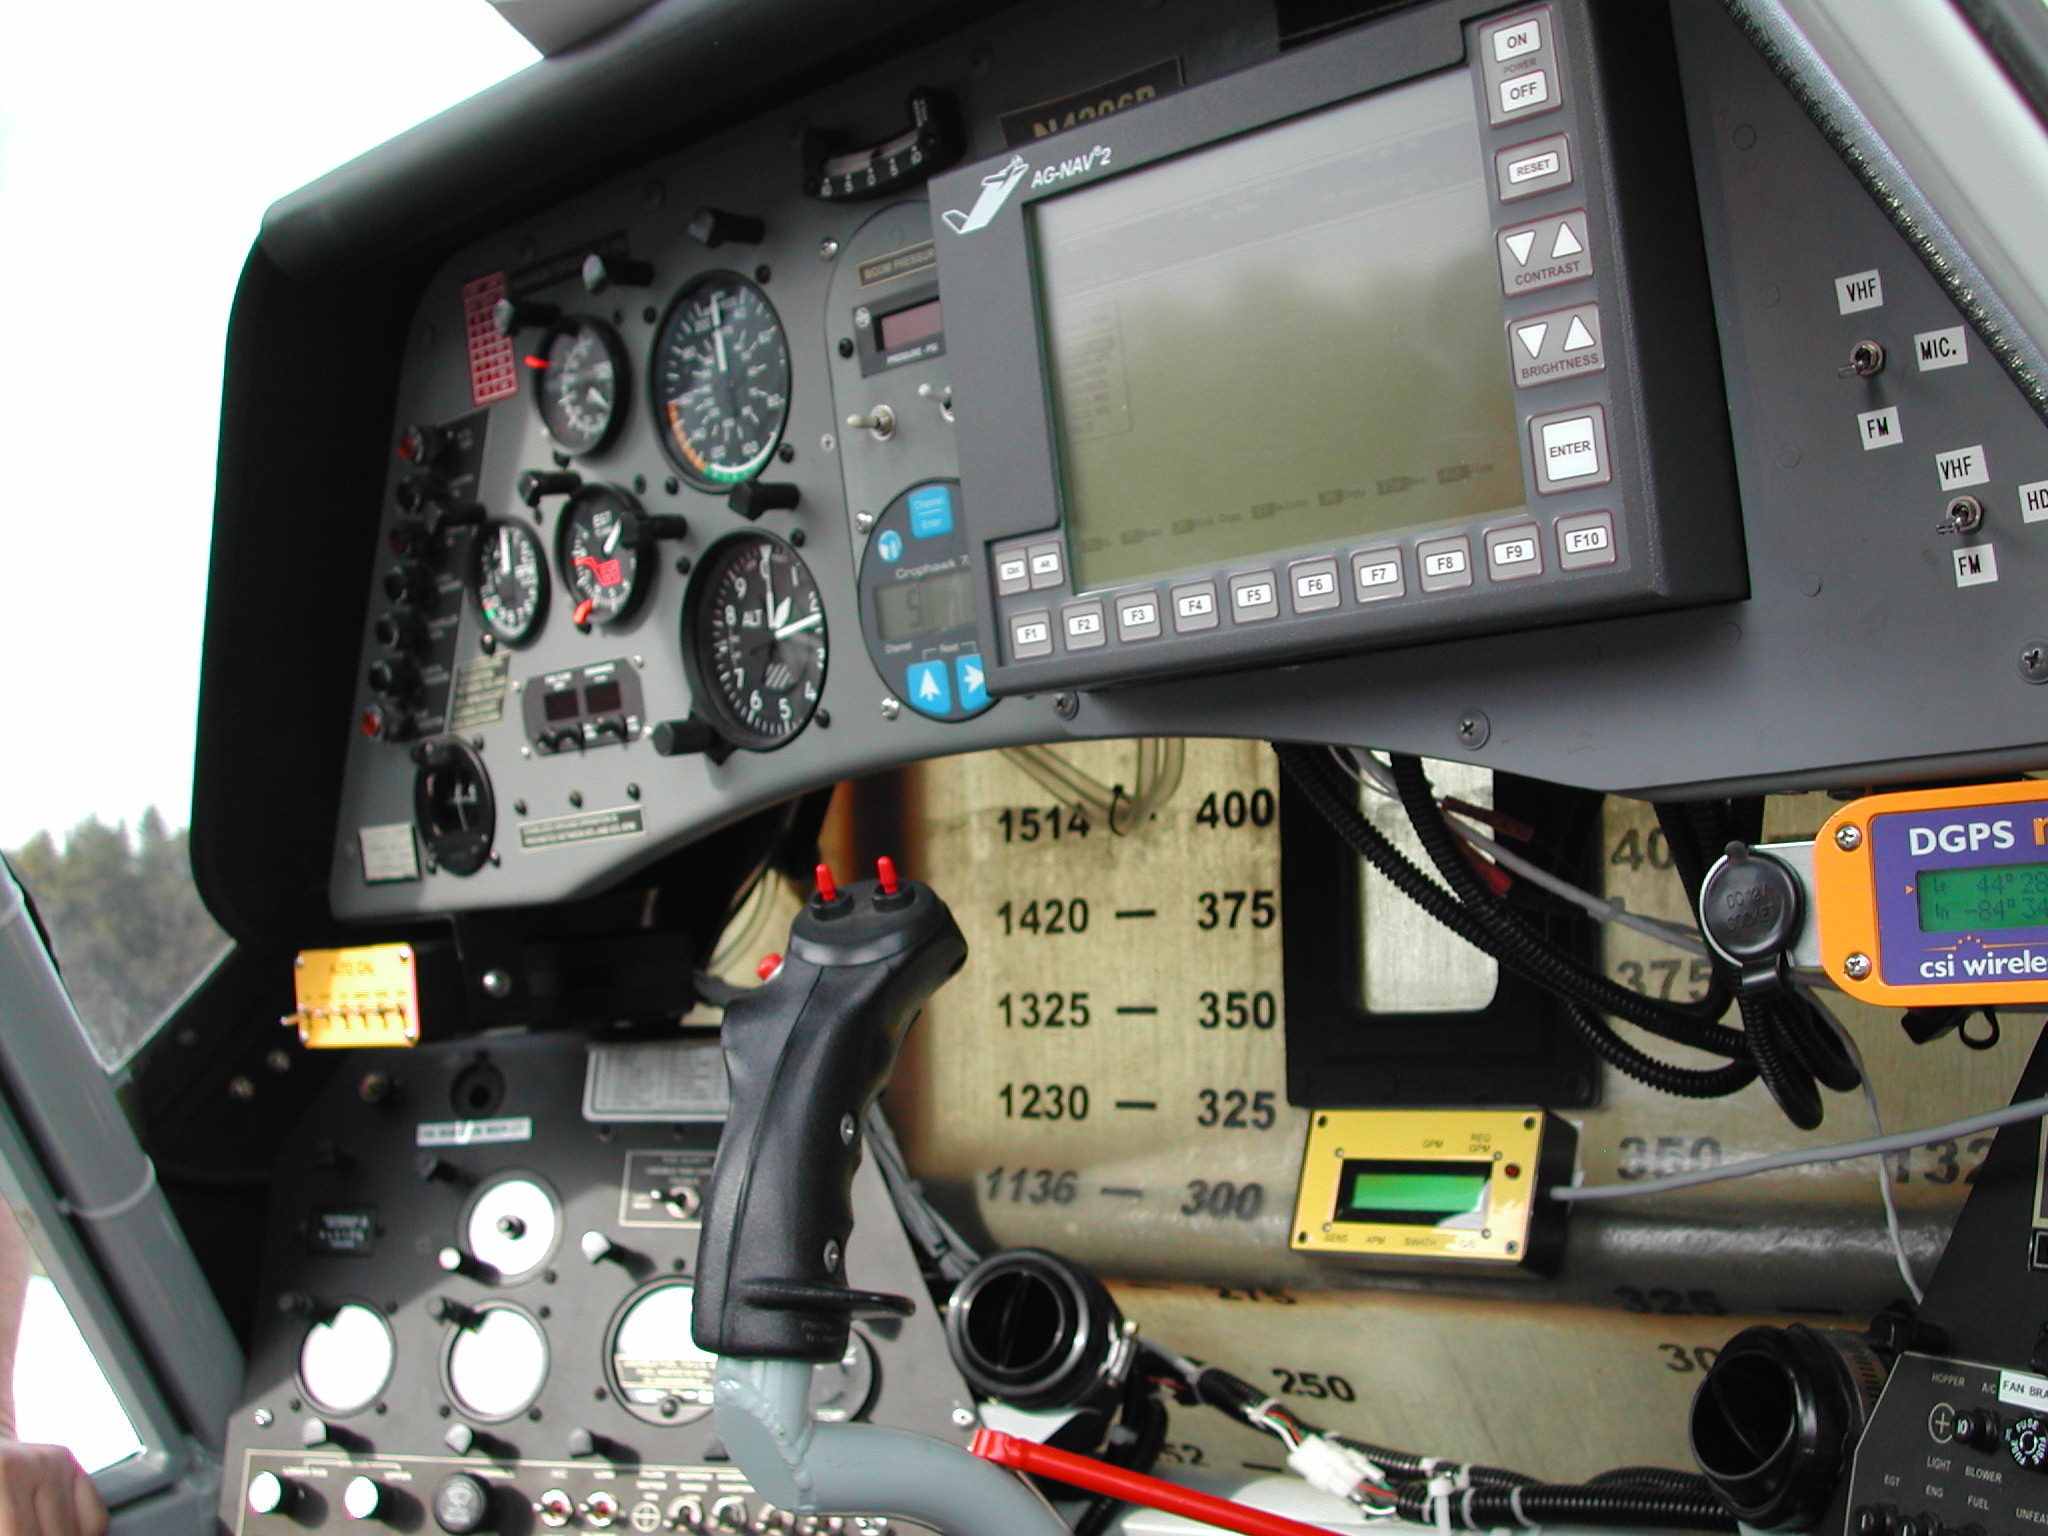 Inside Cockpit with GPS Device